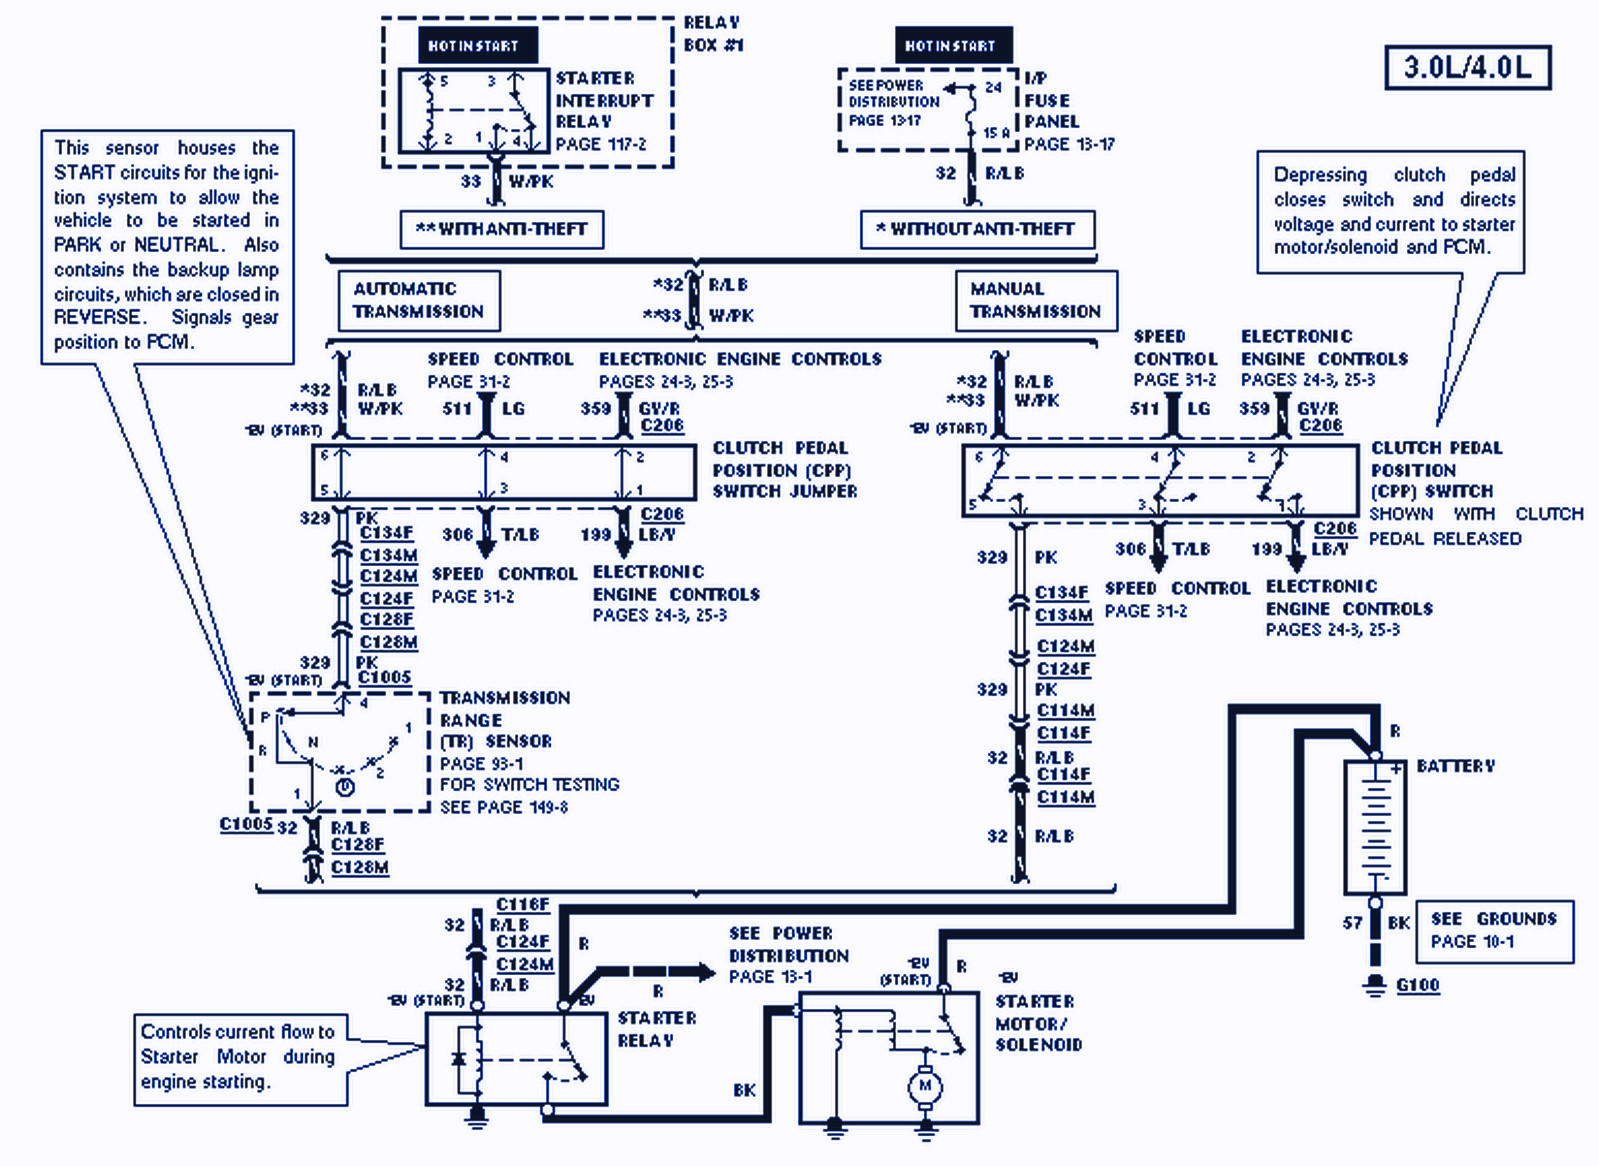 1996 Ford Ranger Wiring - Wiring Diagram Schema Blog  L Ford Engine Wiring Diagram on ford 4.0 v6 engine, ford aerostar 3.0 engine, 2000 windstar 3.8 engine diagram, jeep cherokee 4.0 engine diagram, jeep 4.0 vacuum diagram, 2003 ford explorer intake manifold diagram, ford cruise control diagram, toyota 4.0 engine diagram, 2006 toyota rav4 engine diagram, chrysler 4.0l engine diagram, 2006 mustang engine diagram, ford 4.0 sohc problems, 04 explorer timing chain diagram, jeep 4.0l engine diagram, ford 4.0 sohc exploded-view, ford automatic transmission diagram, 1997 mazda b2300 engine diagram, ford ranger 4.0l engine, 2002 mercury sable engine diagram, ford vulcan engine,